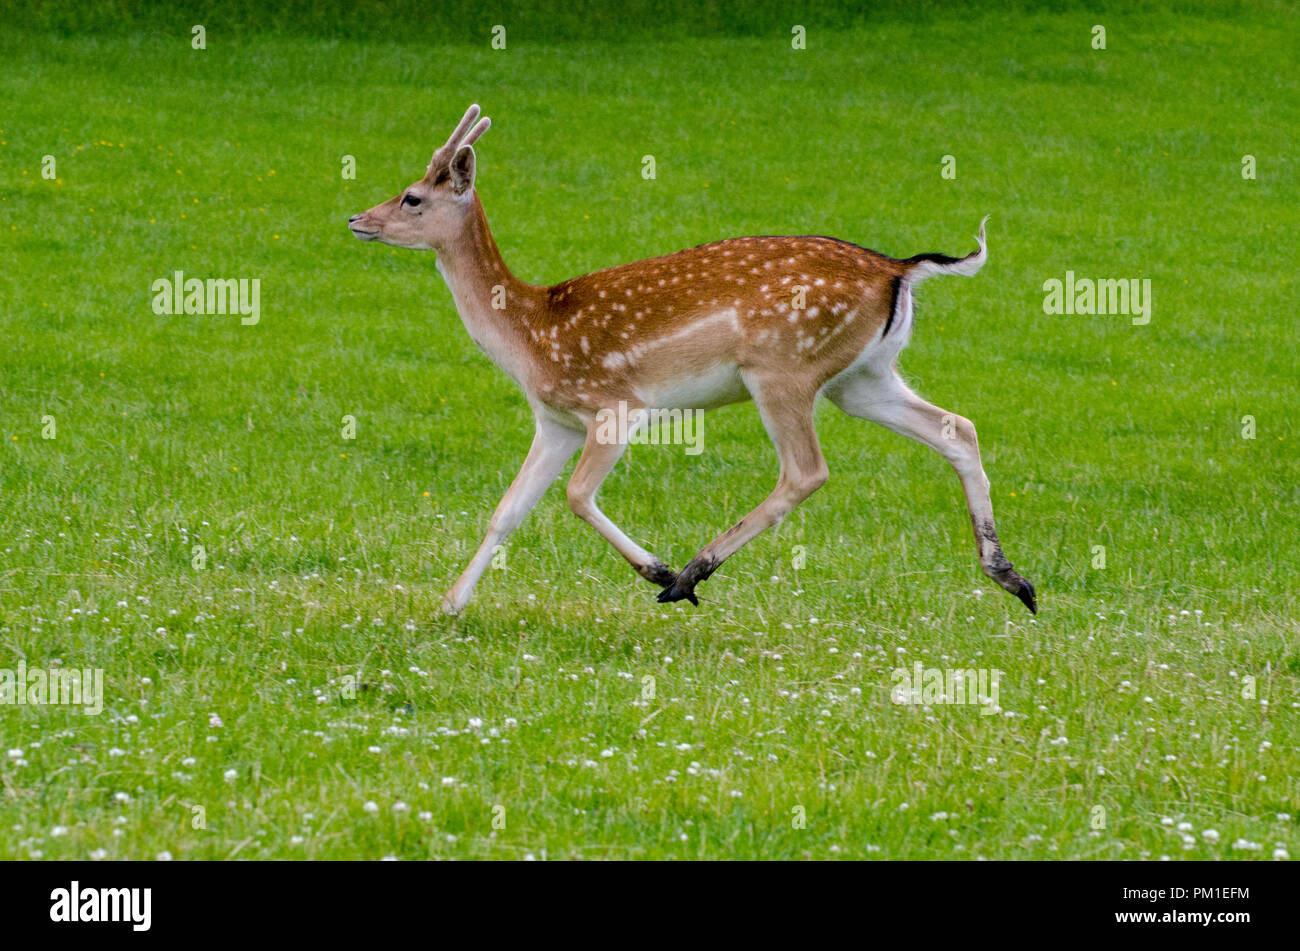 A side view of a fallow deer as it runs on the grass in the meadow - Stock Image